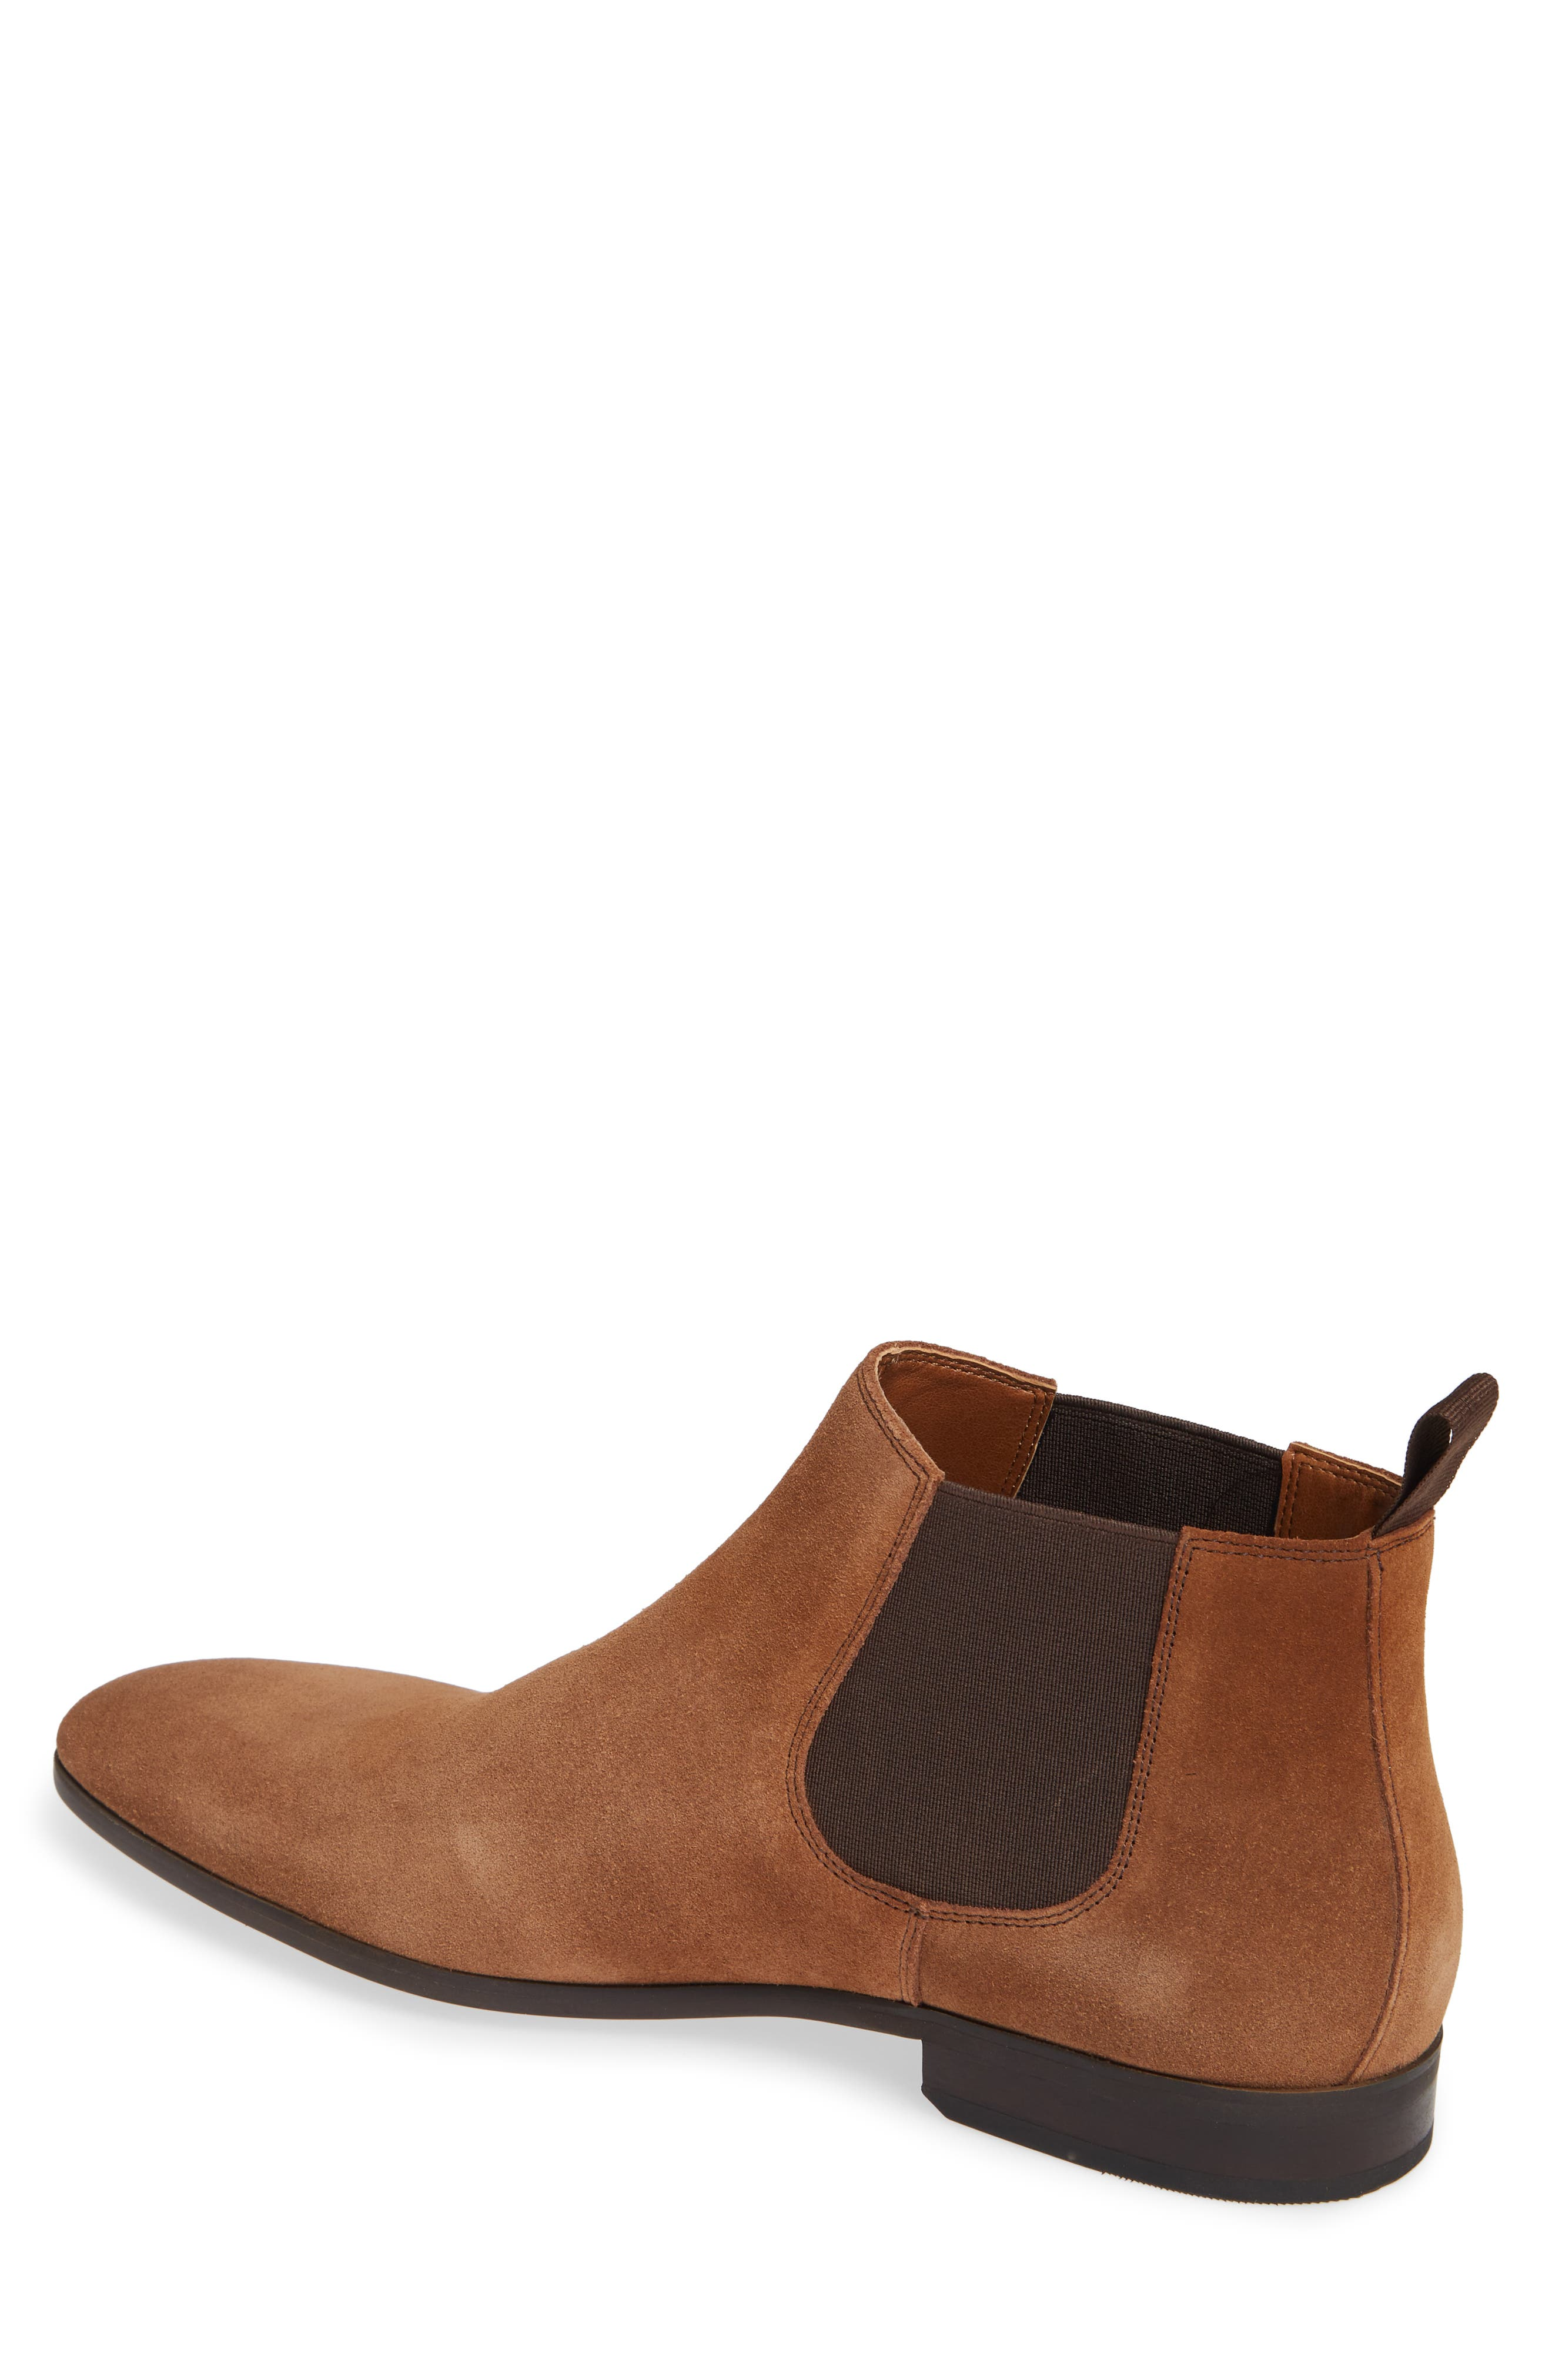 Edward Chelsea Boot,                             Alternate thumbnail 2, color,                             CHESTNUT SUEDE